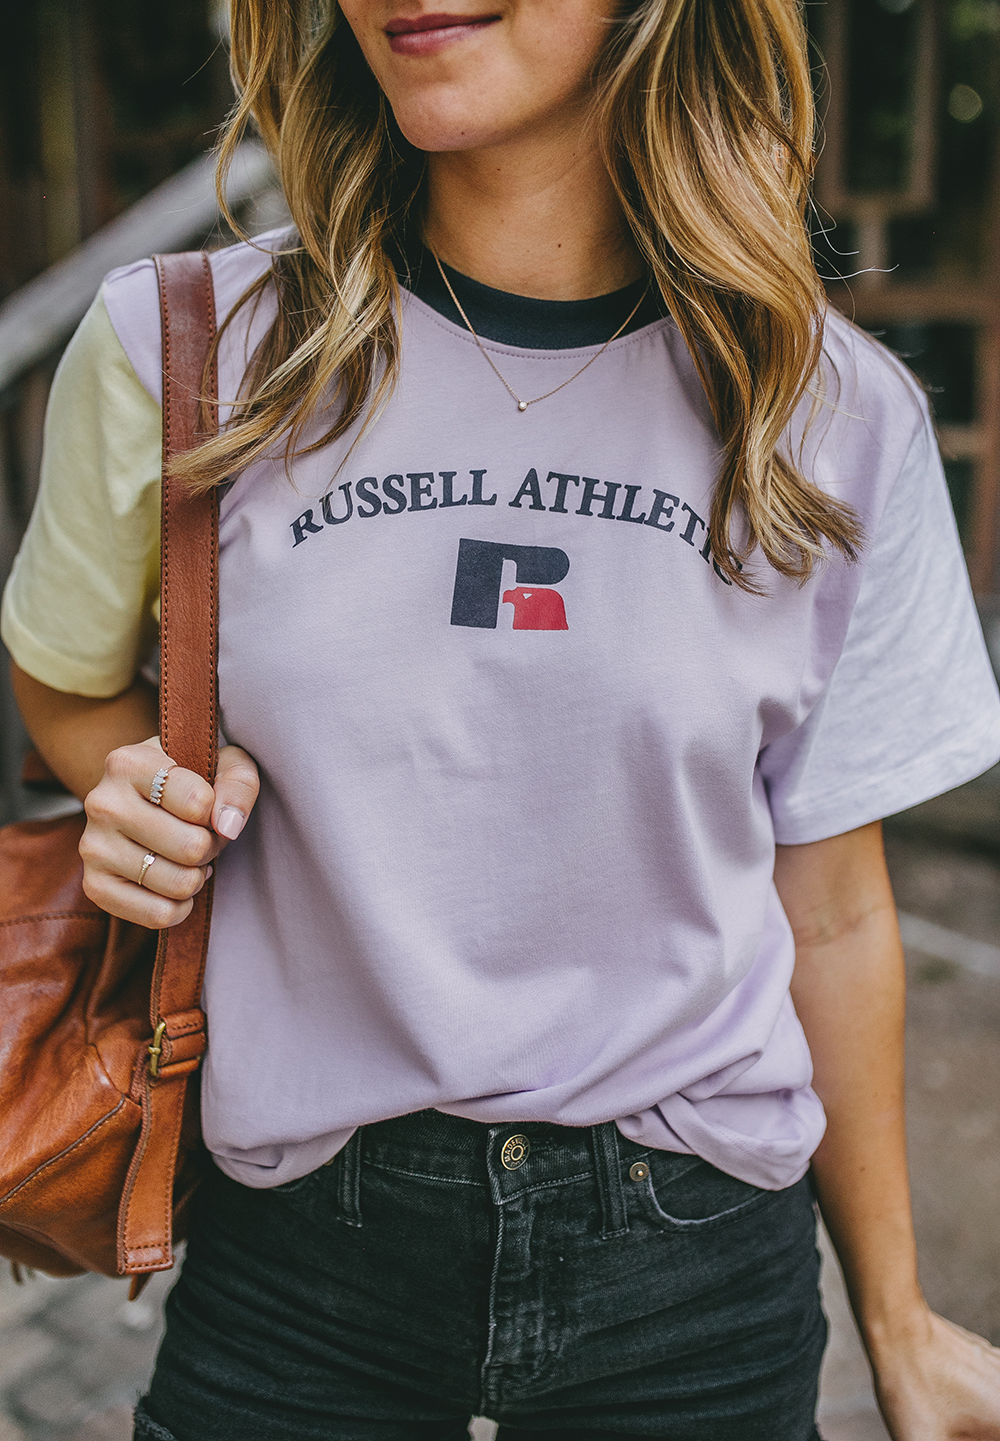 livvyland-blog-olivia-watson-russell-athletic-shirt-urban-outfitters-2